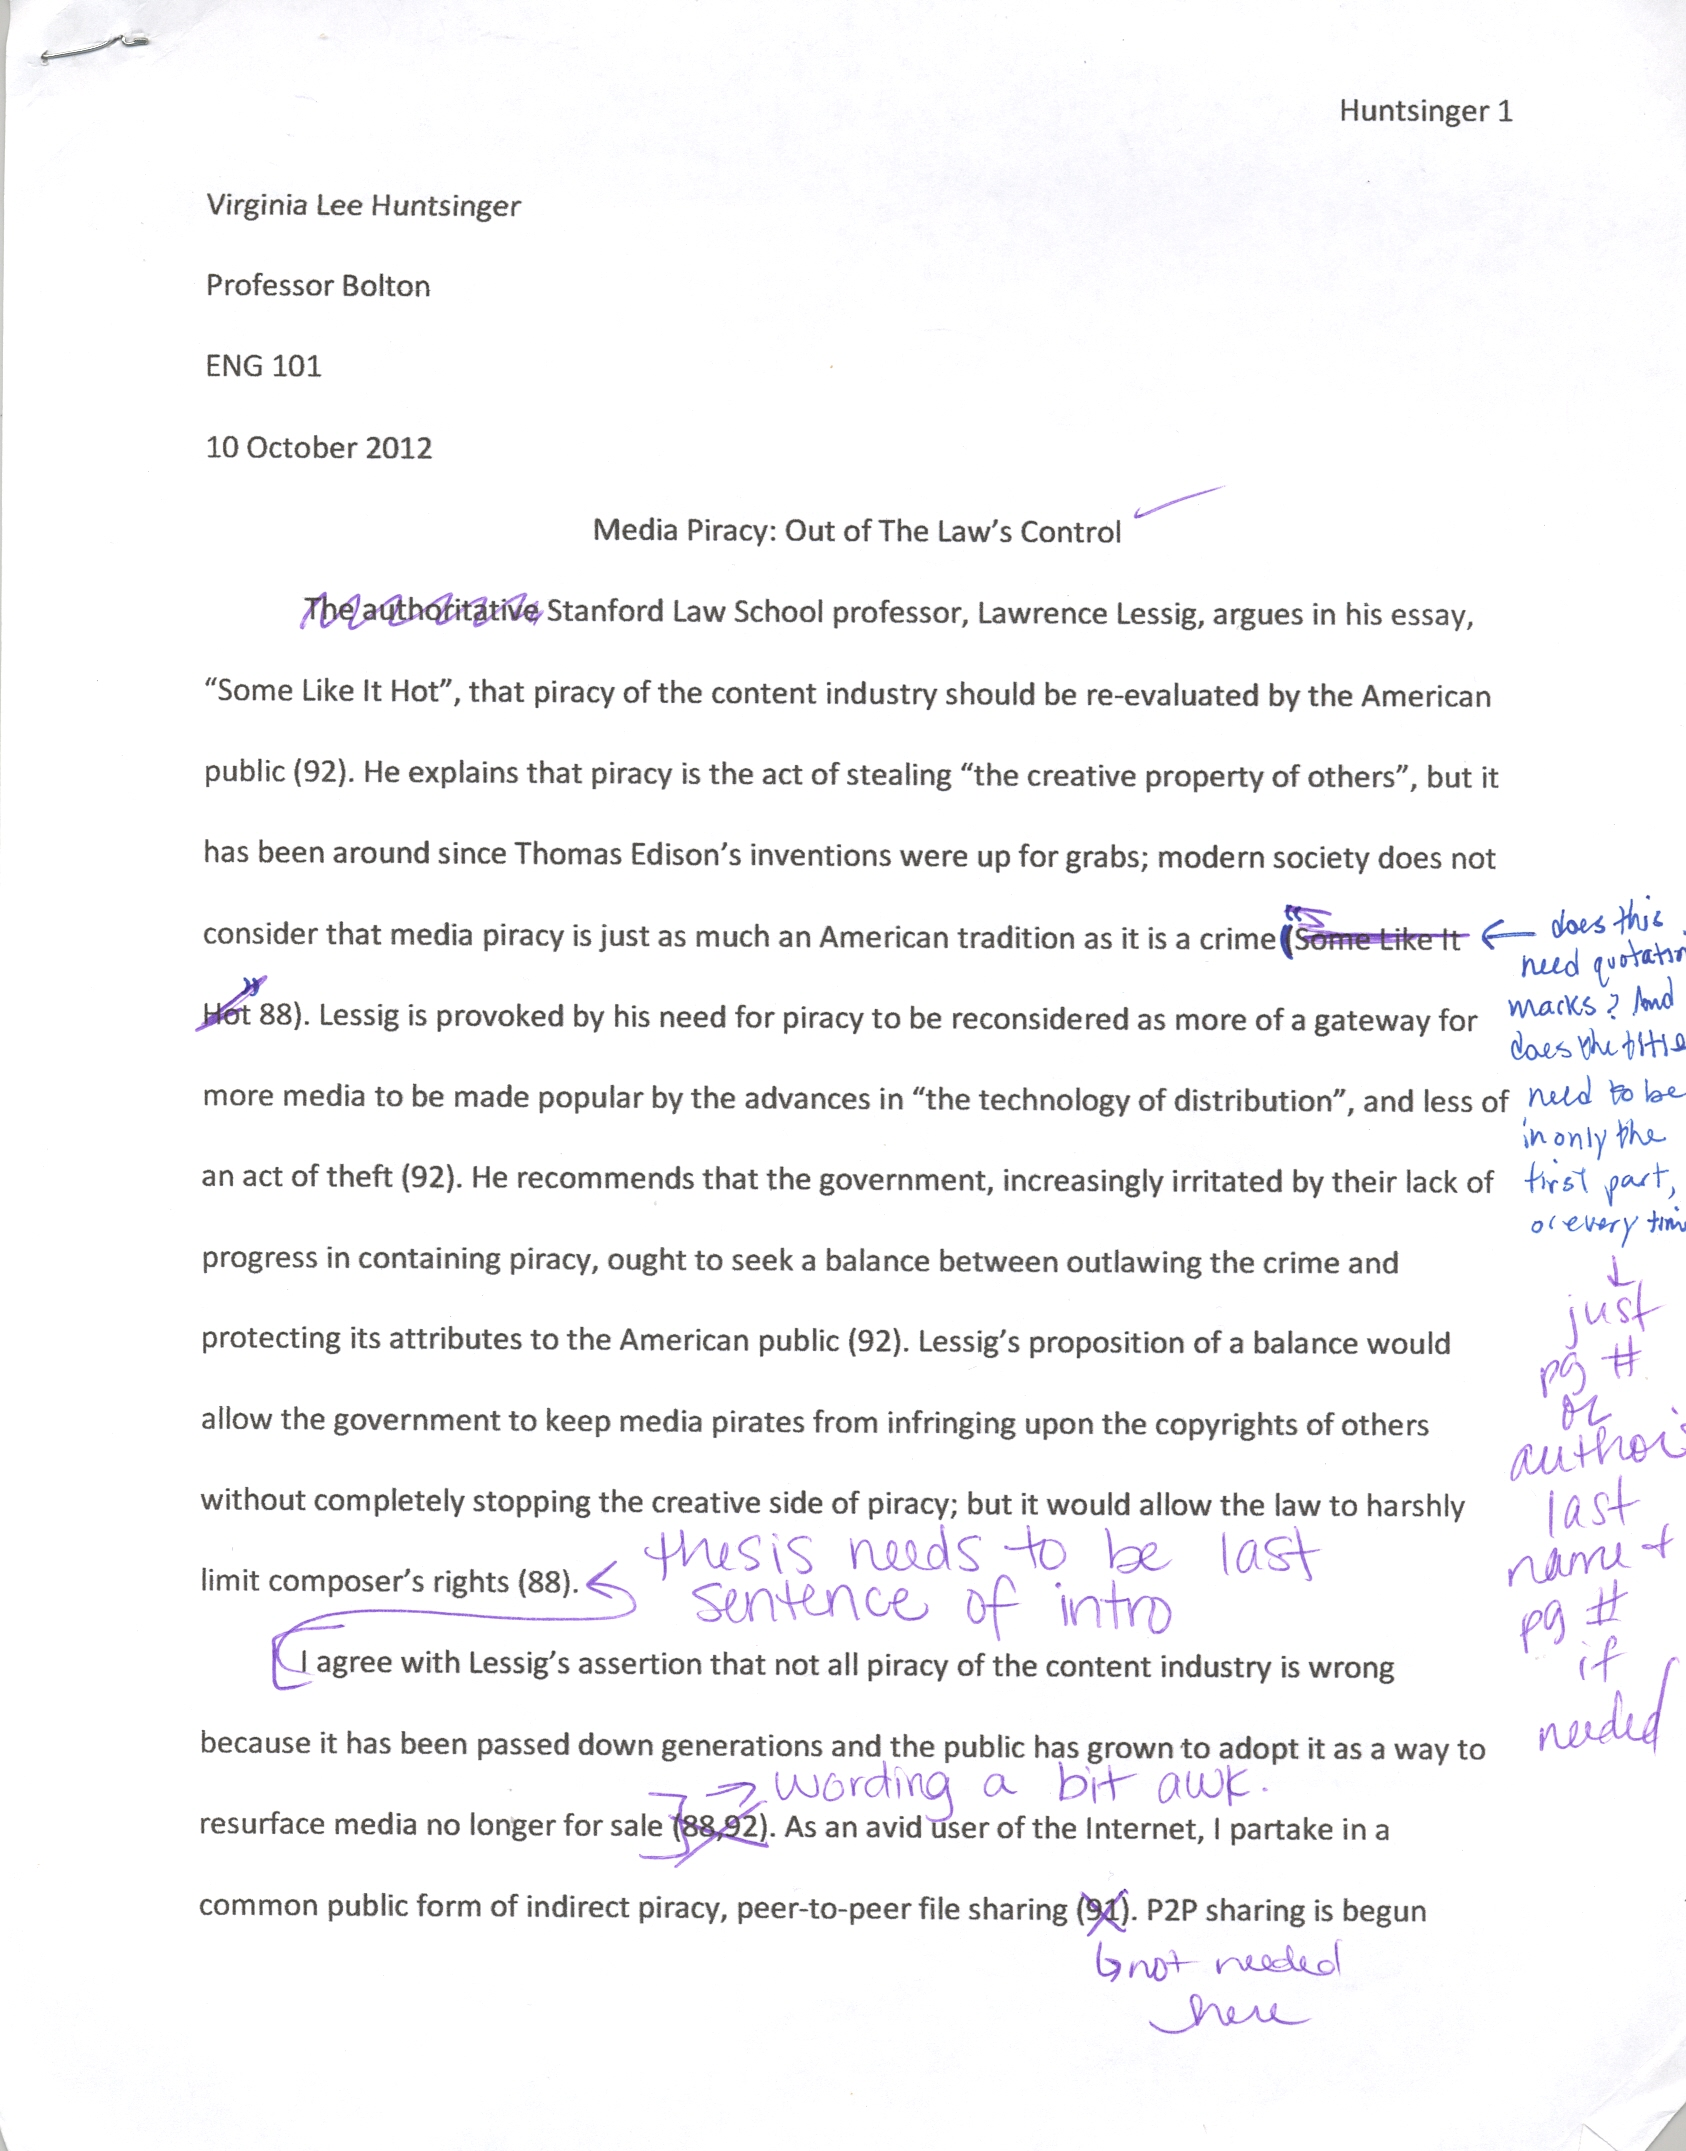 text analysis response english portfolio file